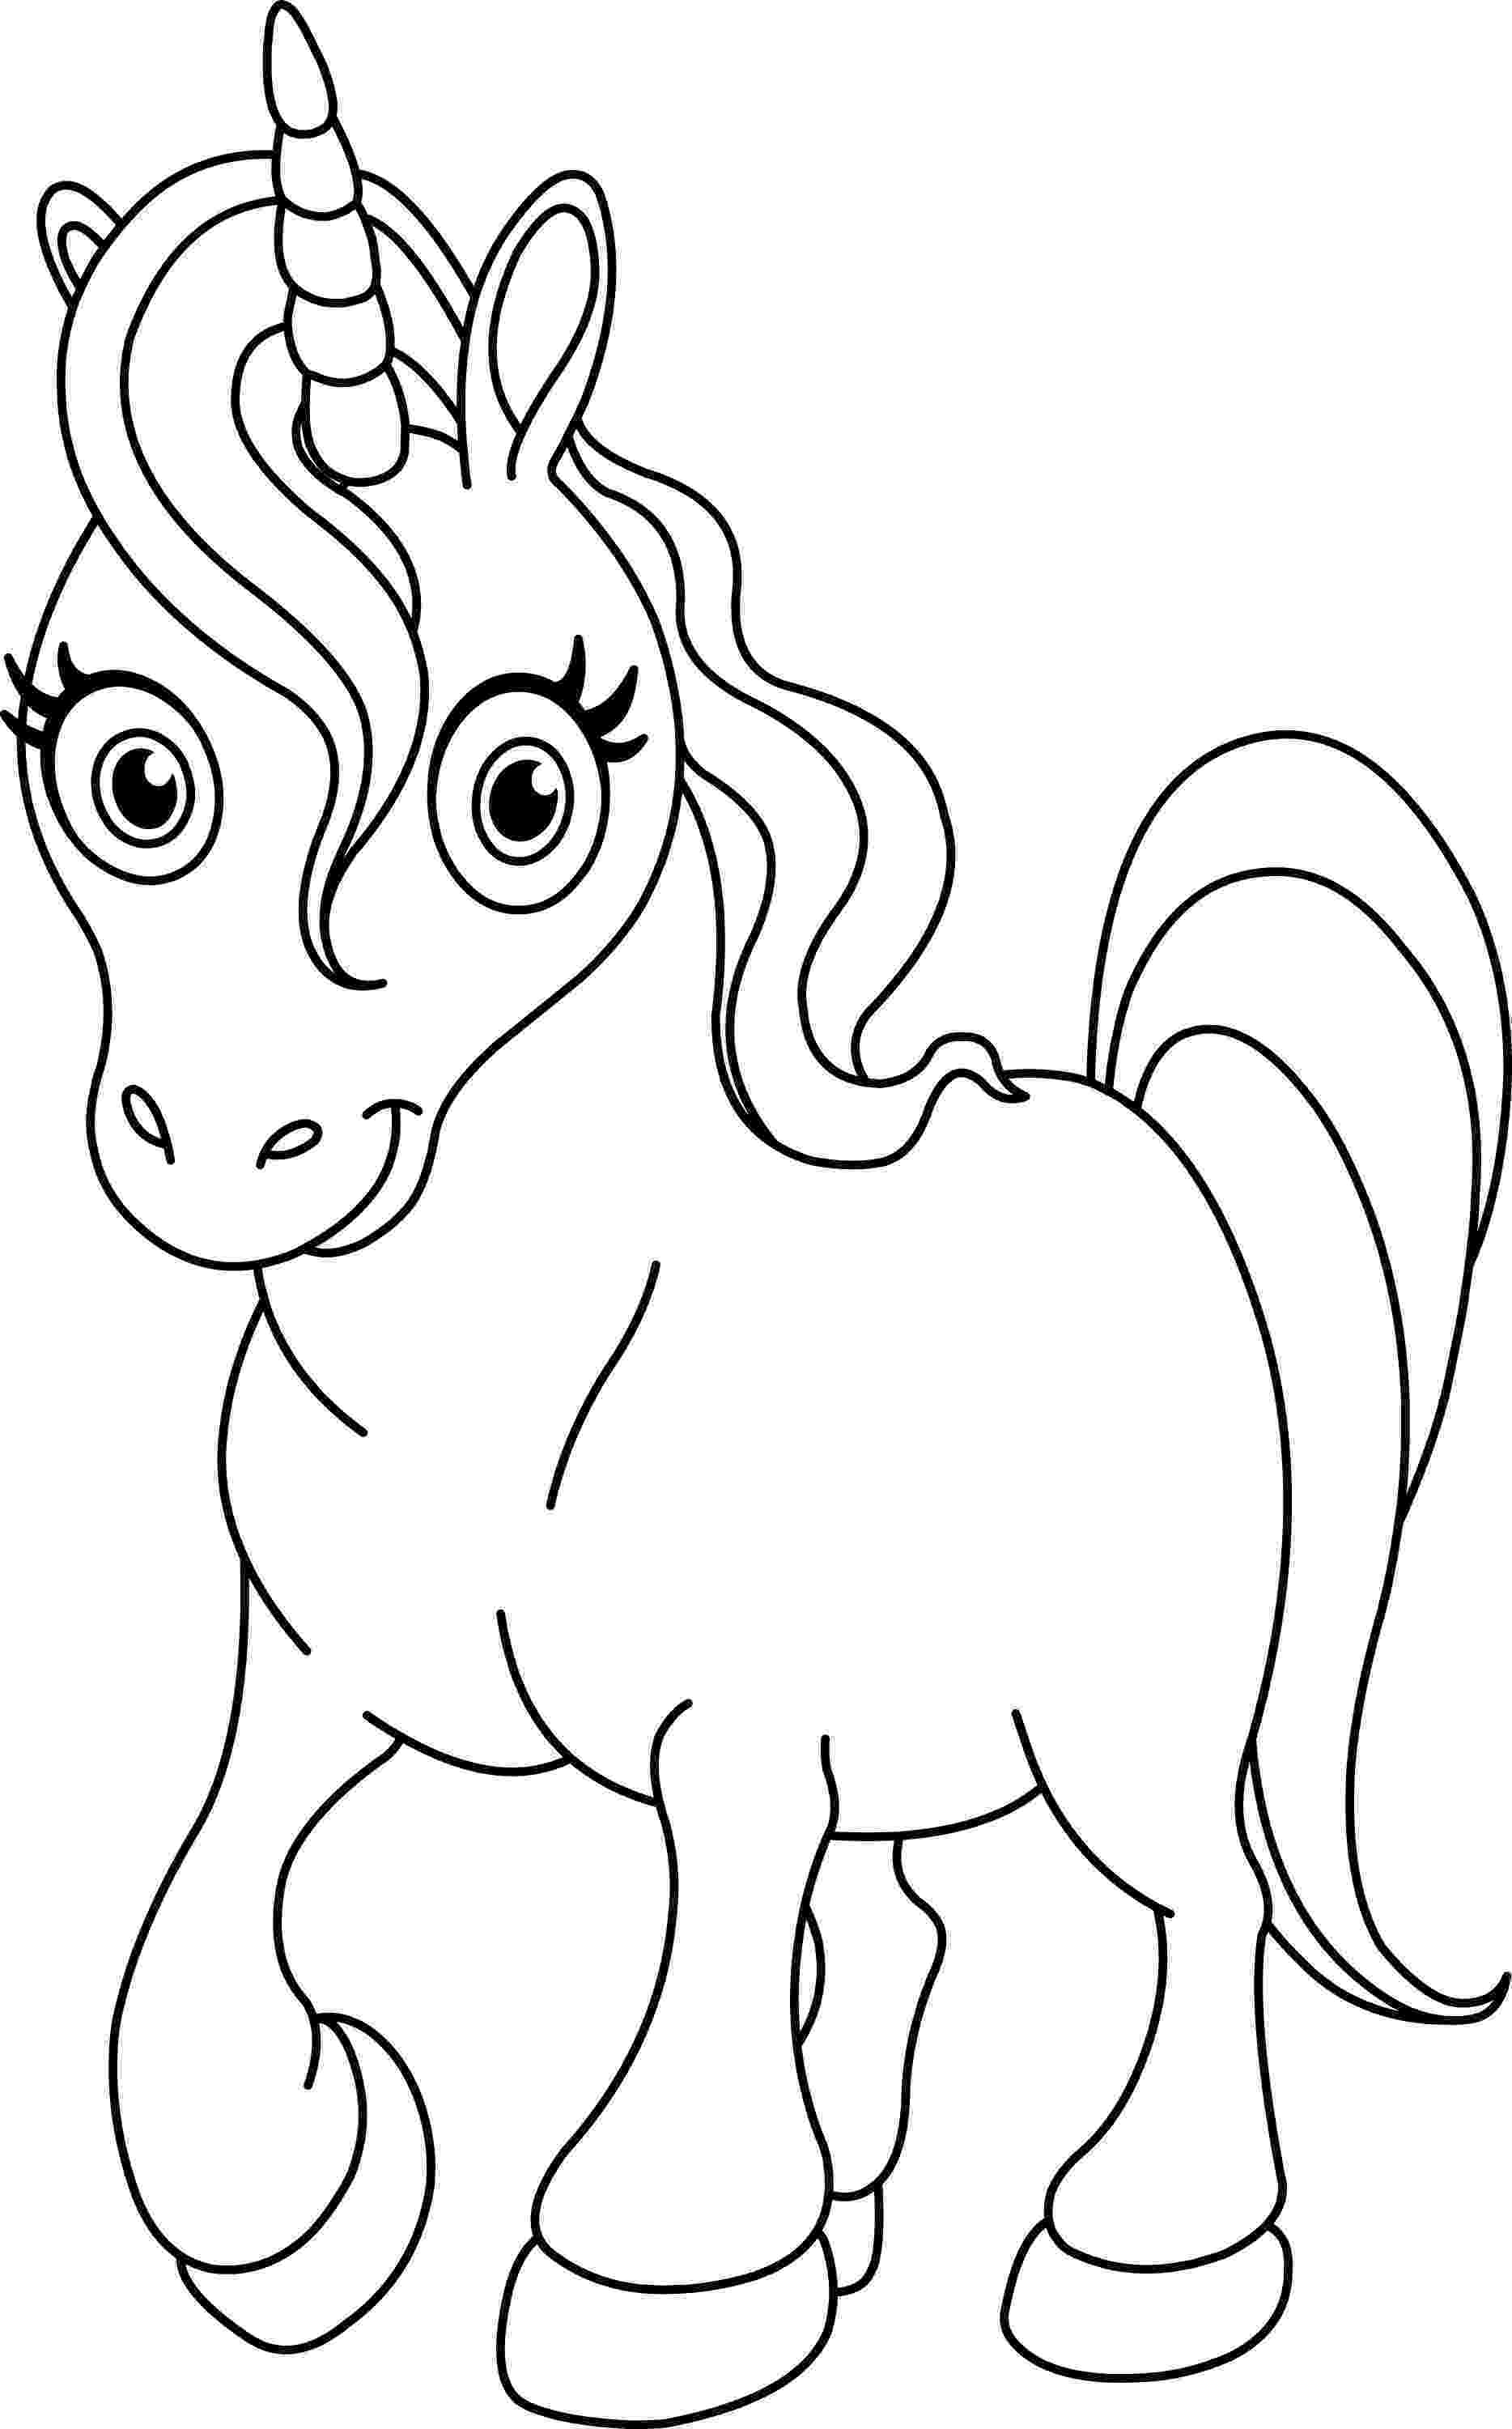 free printable coloring pages for kids firework coloring pages to download and print for free for kids free coloring printable pages